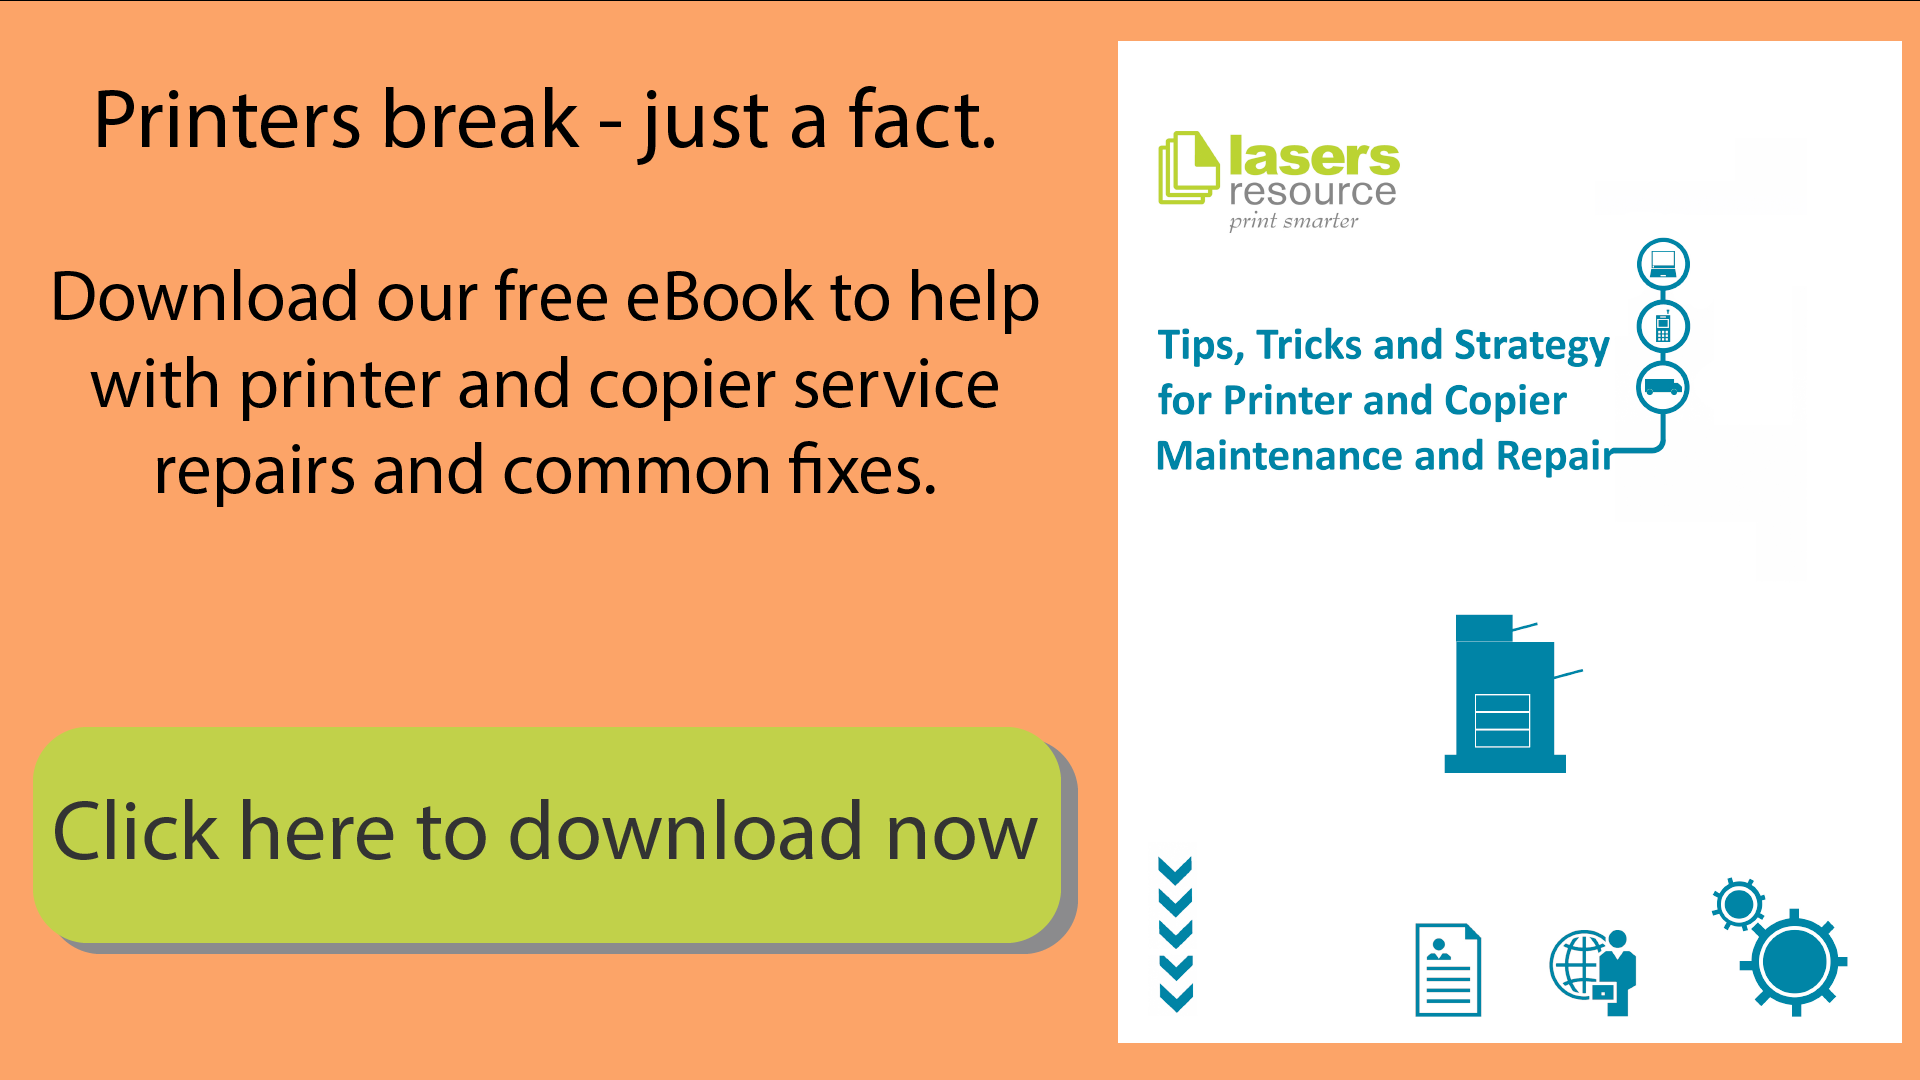 Download the free Printer and Copier eBook here | Printer maintenance | Copier maintenance | Printer Repair | Copier Repair | Fix printer and copier | Lasers Resource